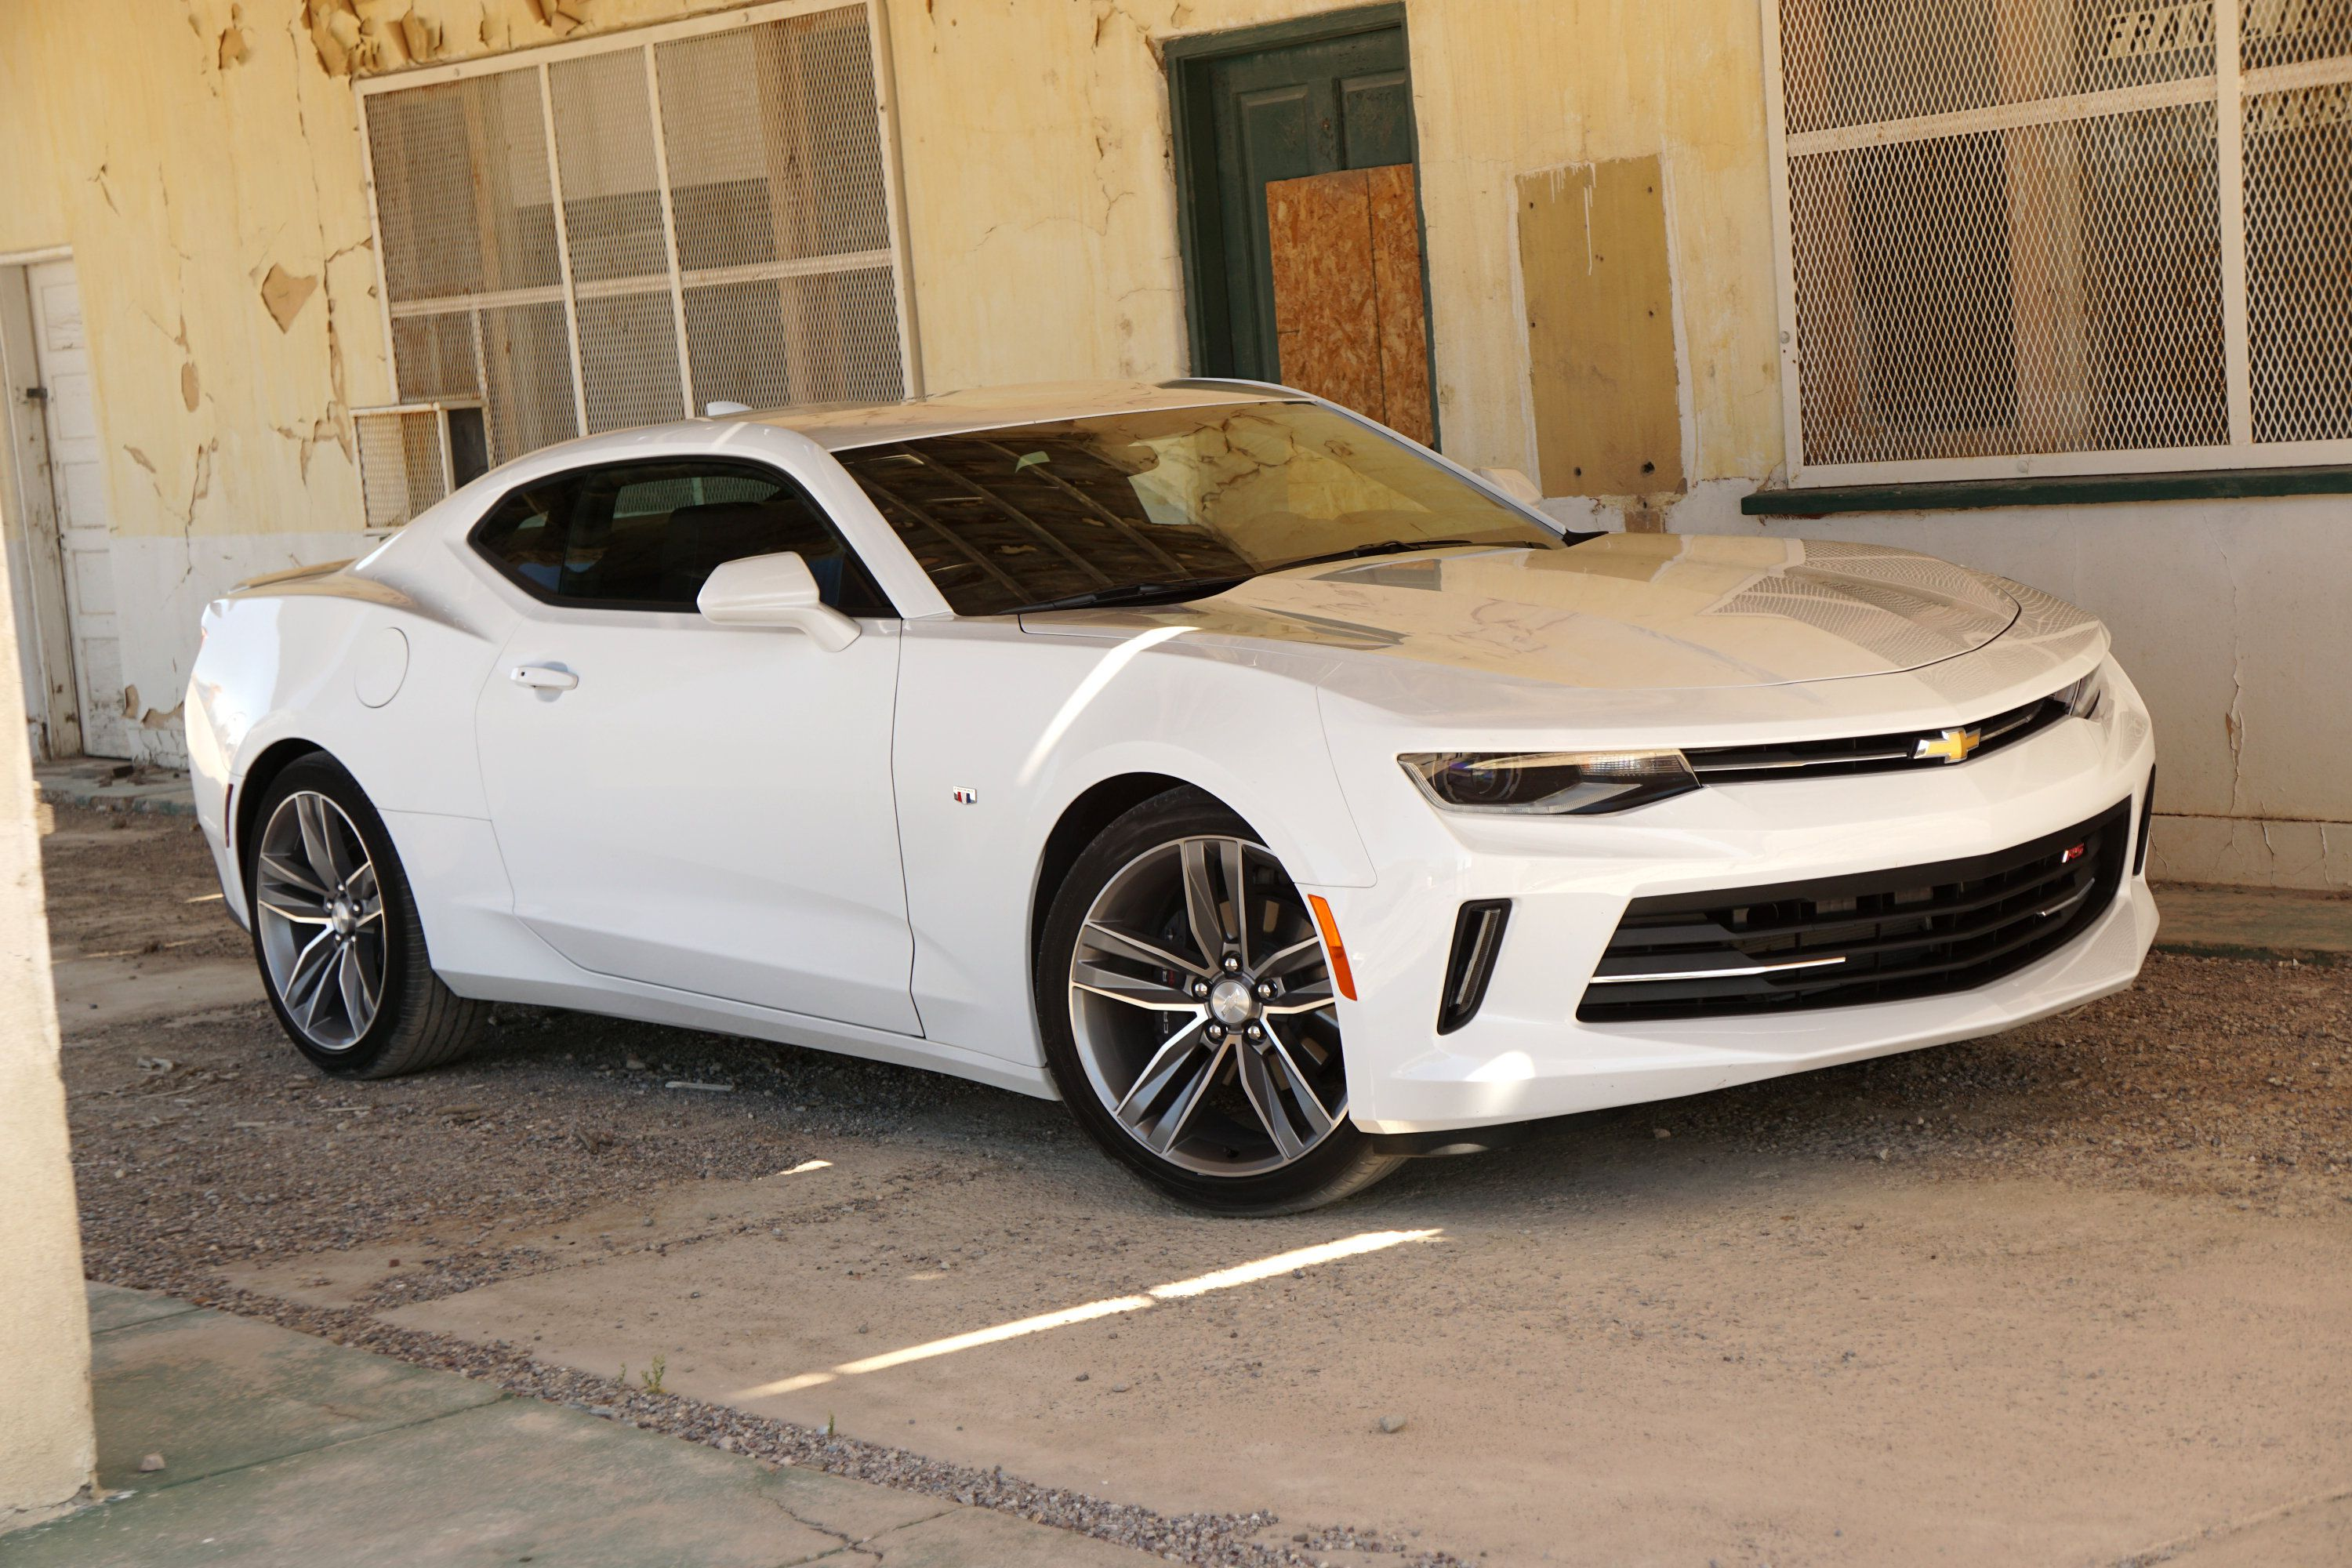 2016 Chevrolet Camaro 2 0T review